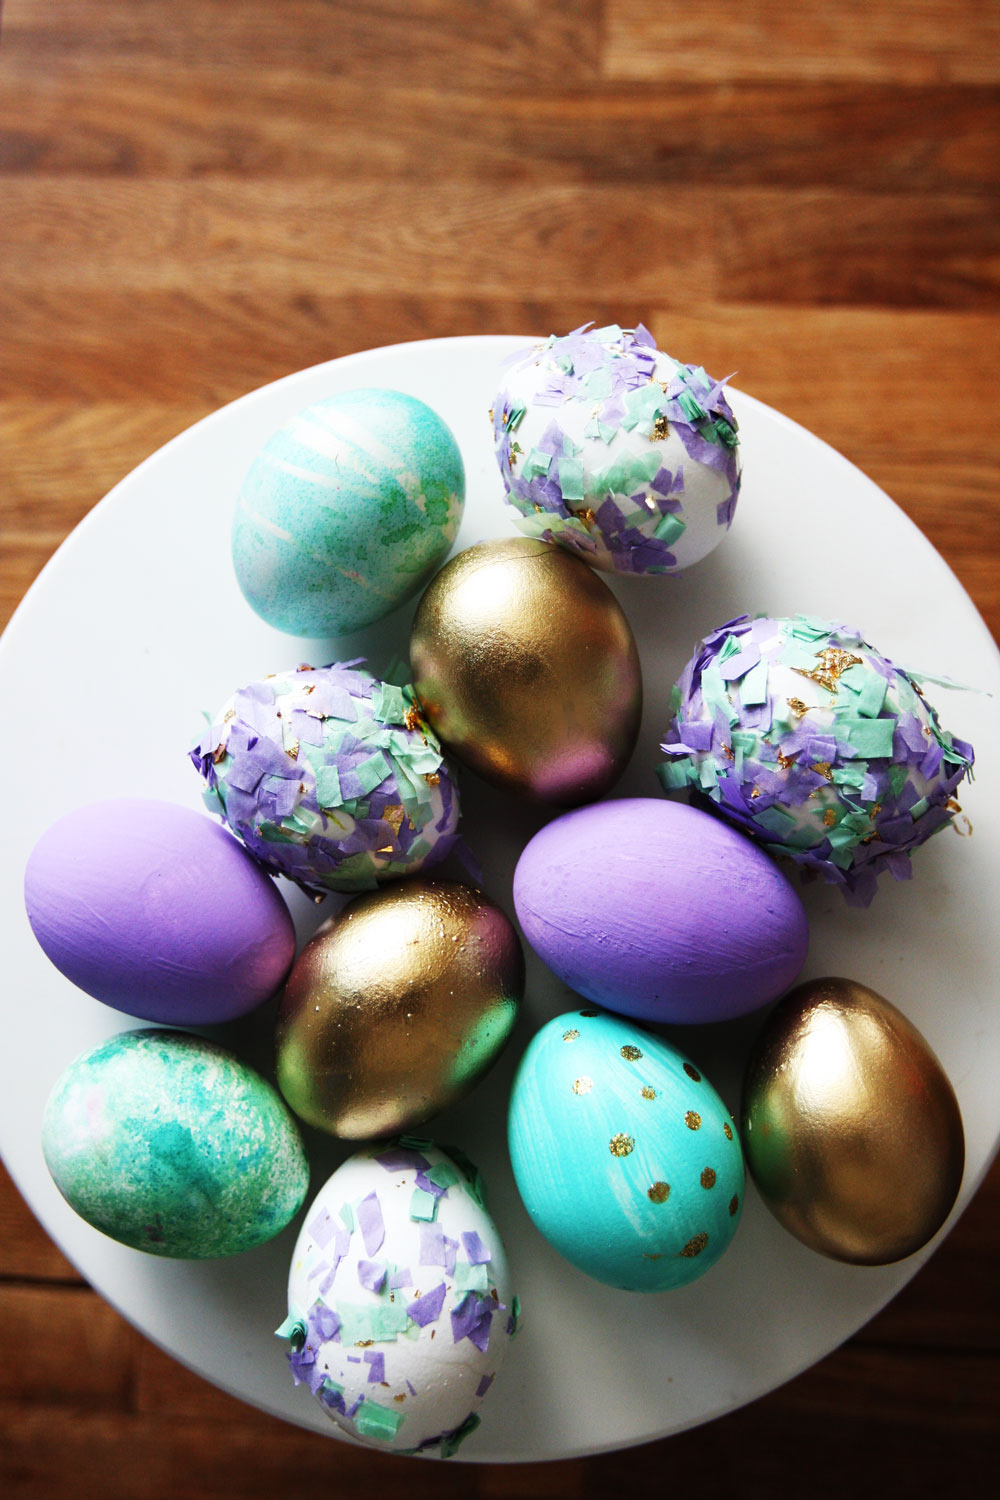 Pictures of decorated eggs